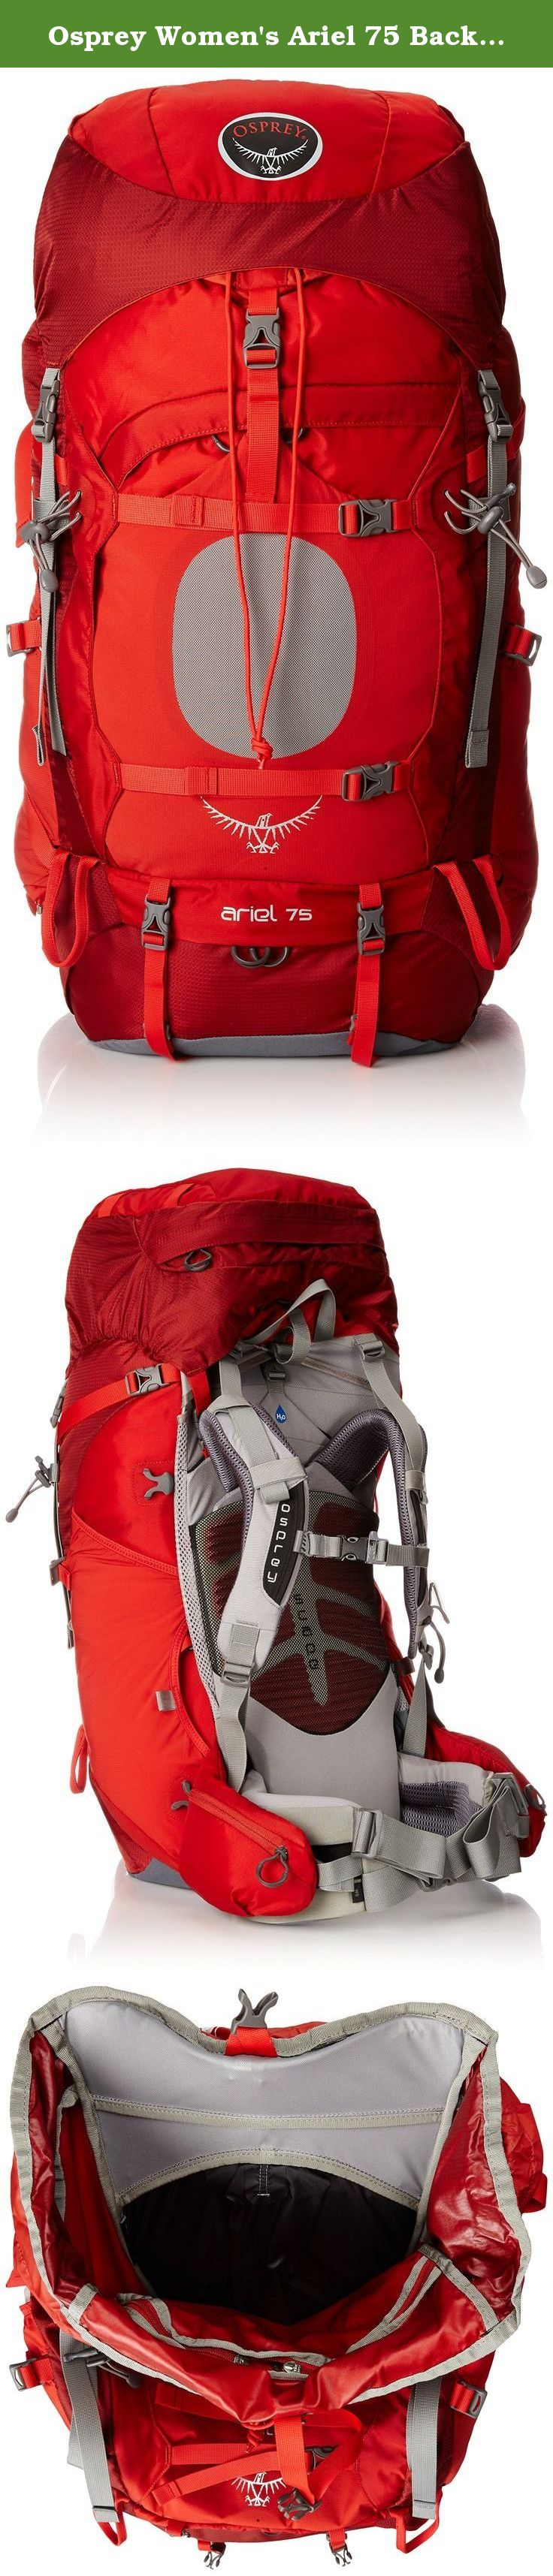 Osprey Women's Ariel 75 Backpack, Vermillion Red, X-Small. The bestselling backpacking series on the market just got even better. Known for its ability to be taken all over the world, from the summit of Everest to a backpack trip through your local wilderness, the fourth generation of Aether/Ariel builds upon its reputation for combining clean design, custom fit and outstanding load carrying comfort. Amongst a plethora of upgrades, the new IsoForm⁴ CM™ hipbelt adds stiffness and padding…